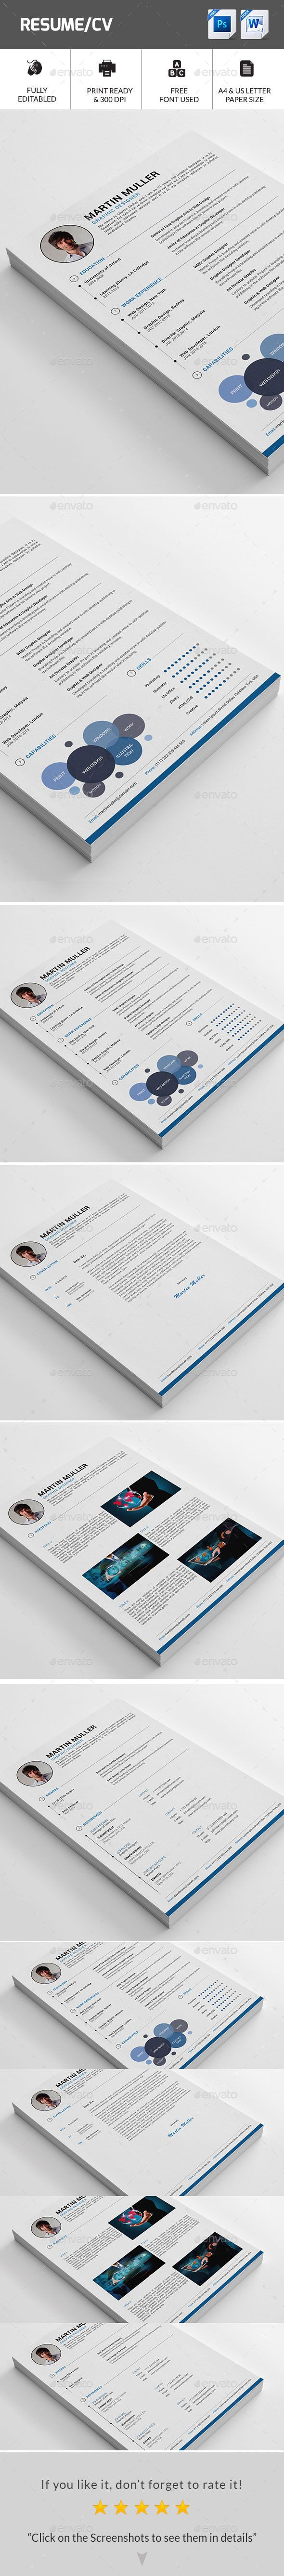 Best Basic Resume  Cv Images On   Basic Resume